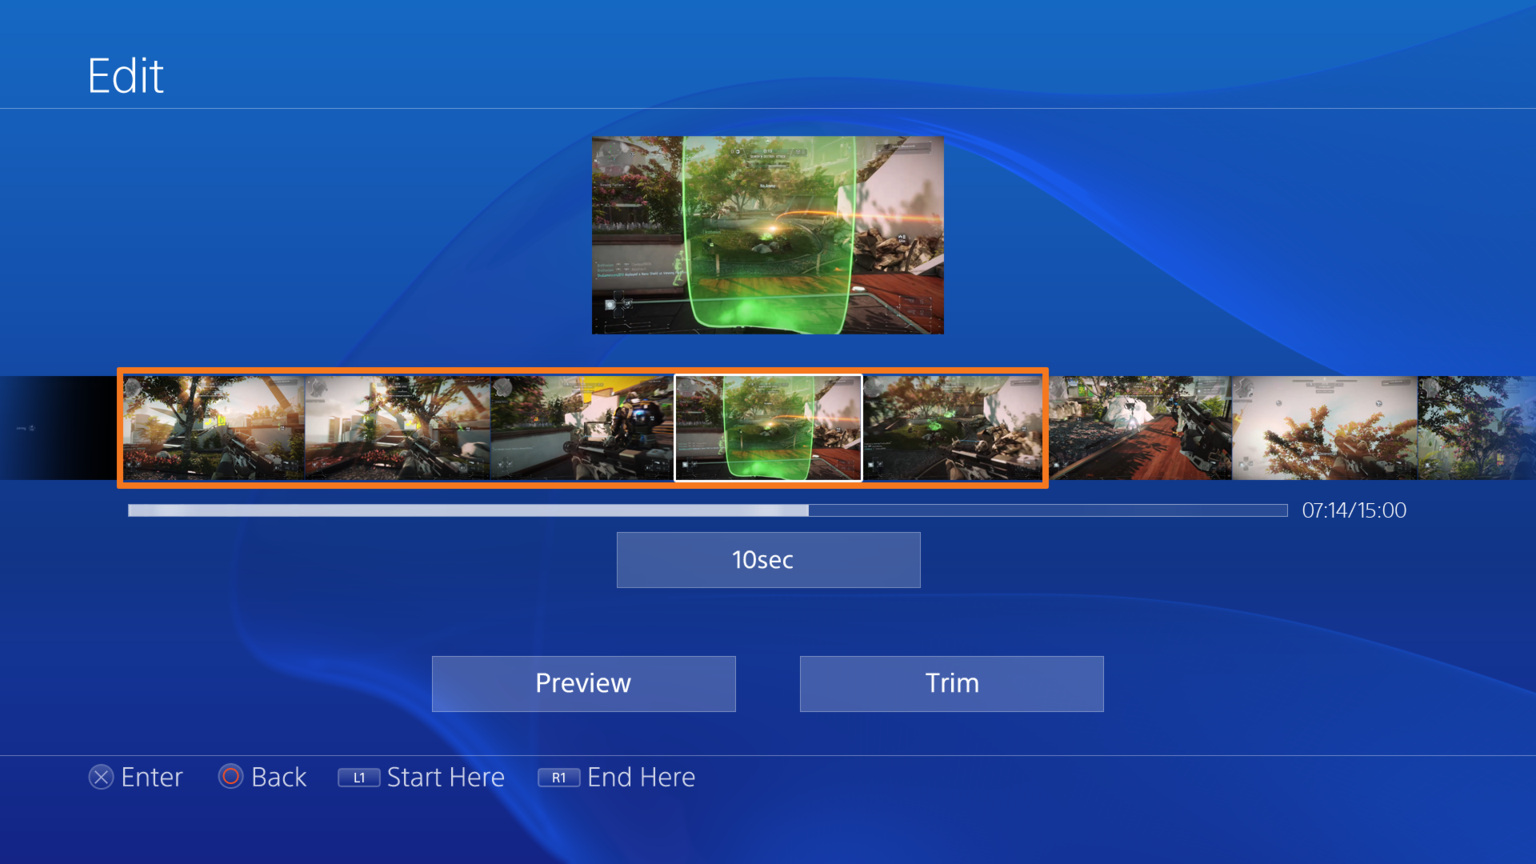 More ps4 ui screenshots for Ps4 at home